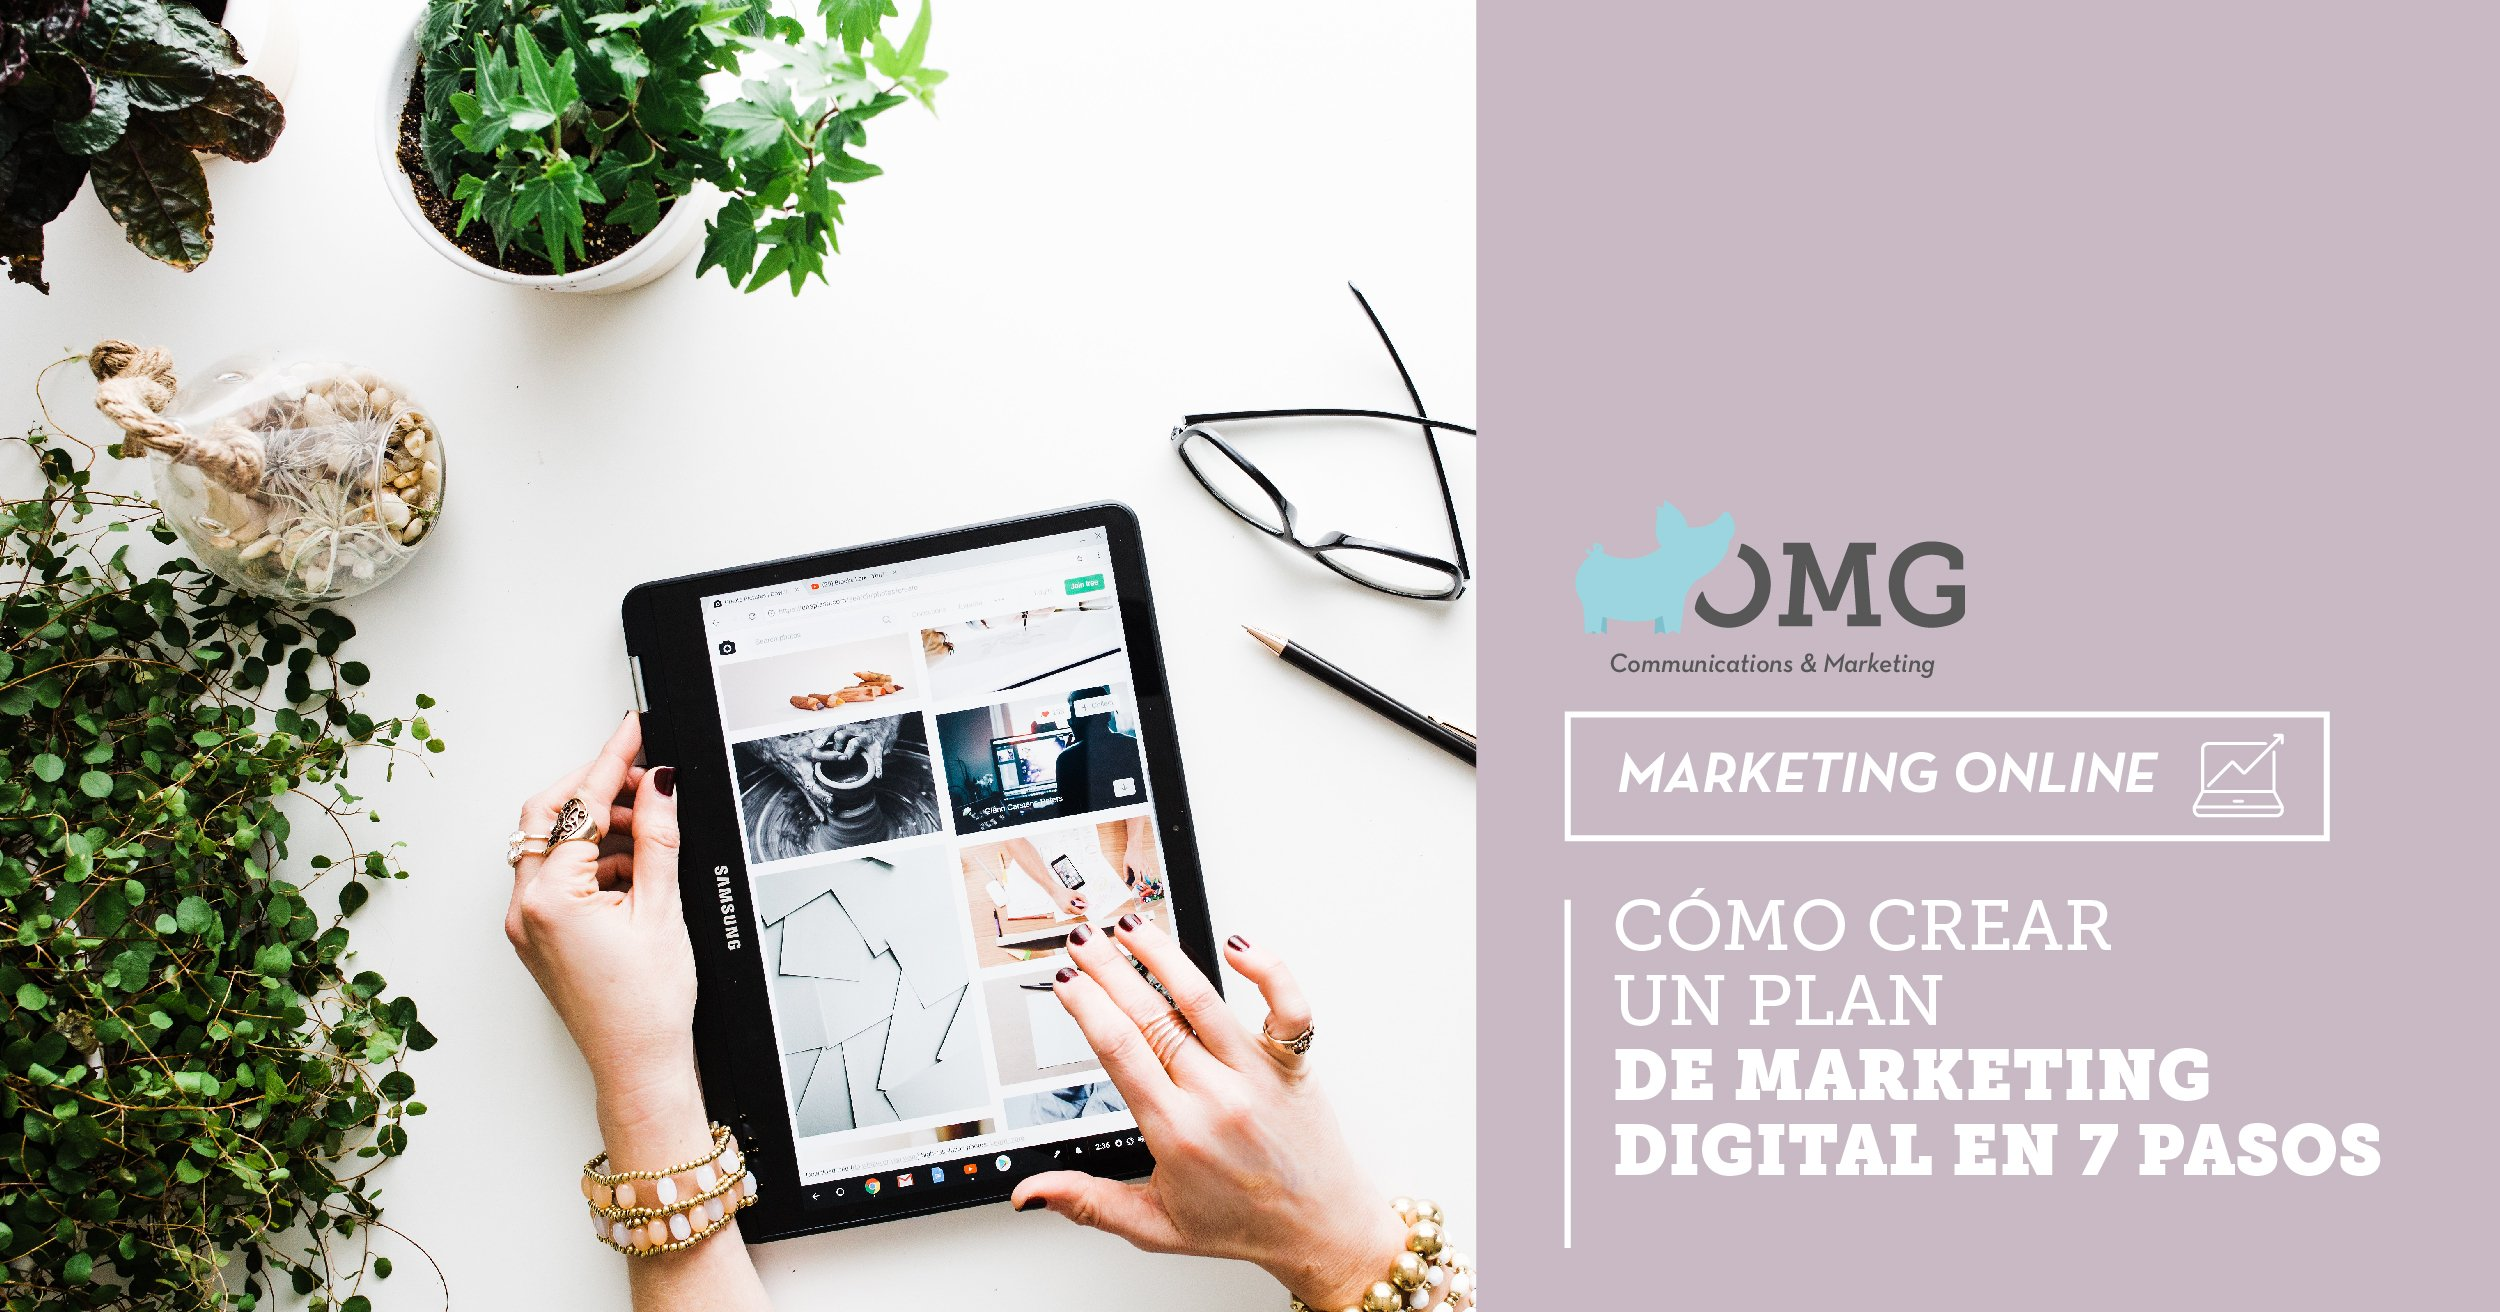 como-crear-un-plan-de-marketing-digital.jpg